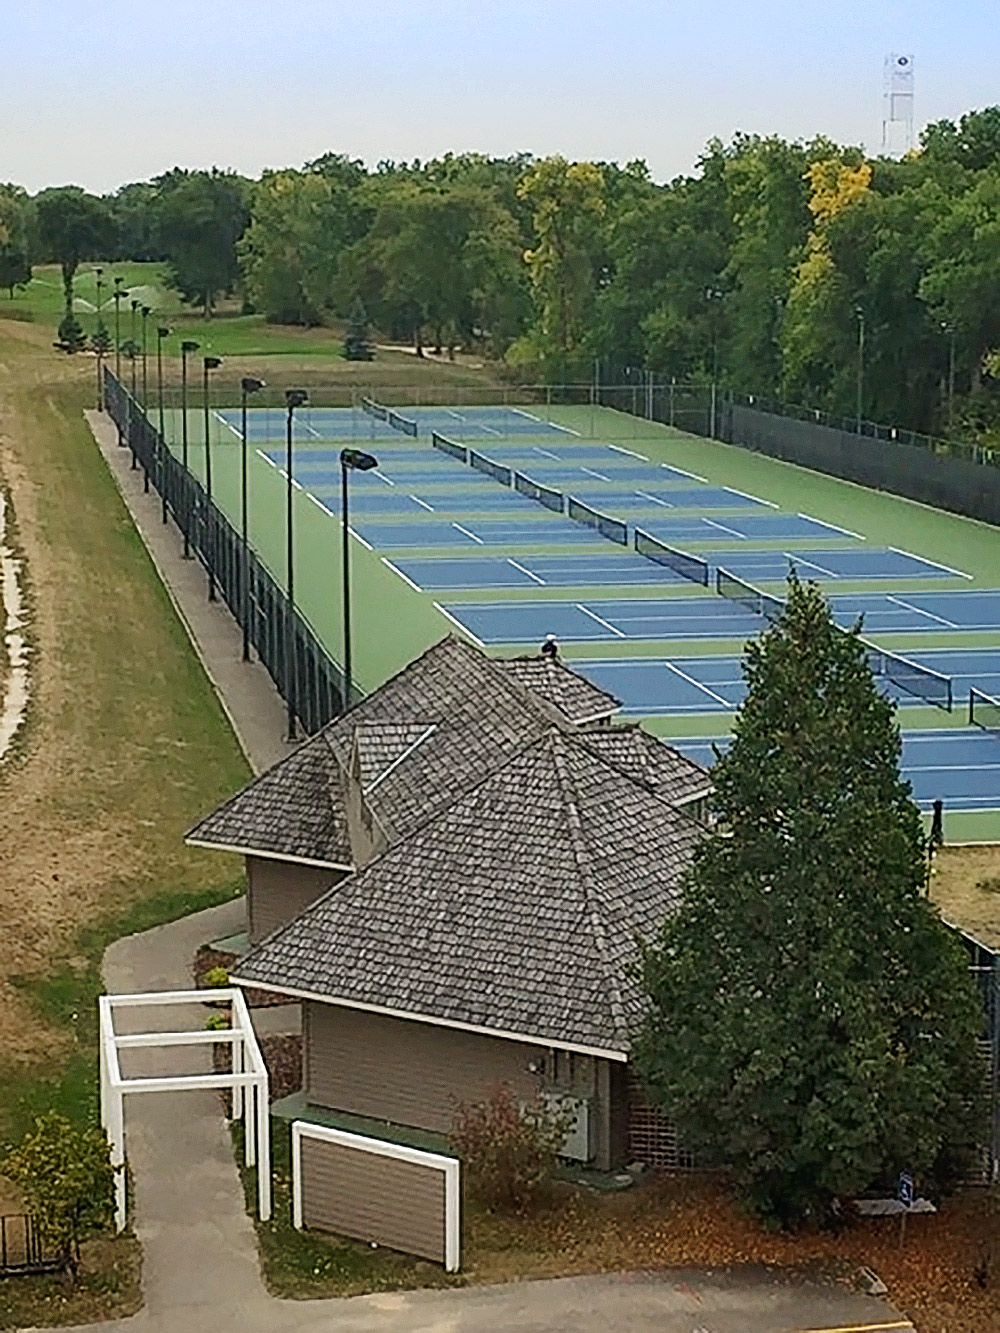 Winnipeg Lawn Tennis Club - 11 newly resurfaced Plexipave hard courts set on the banks of the Red River in beautiful Wildwood.Open to players of all skill levels.